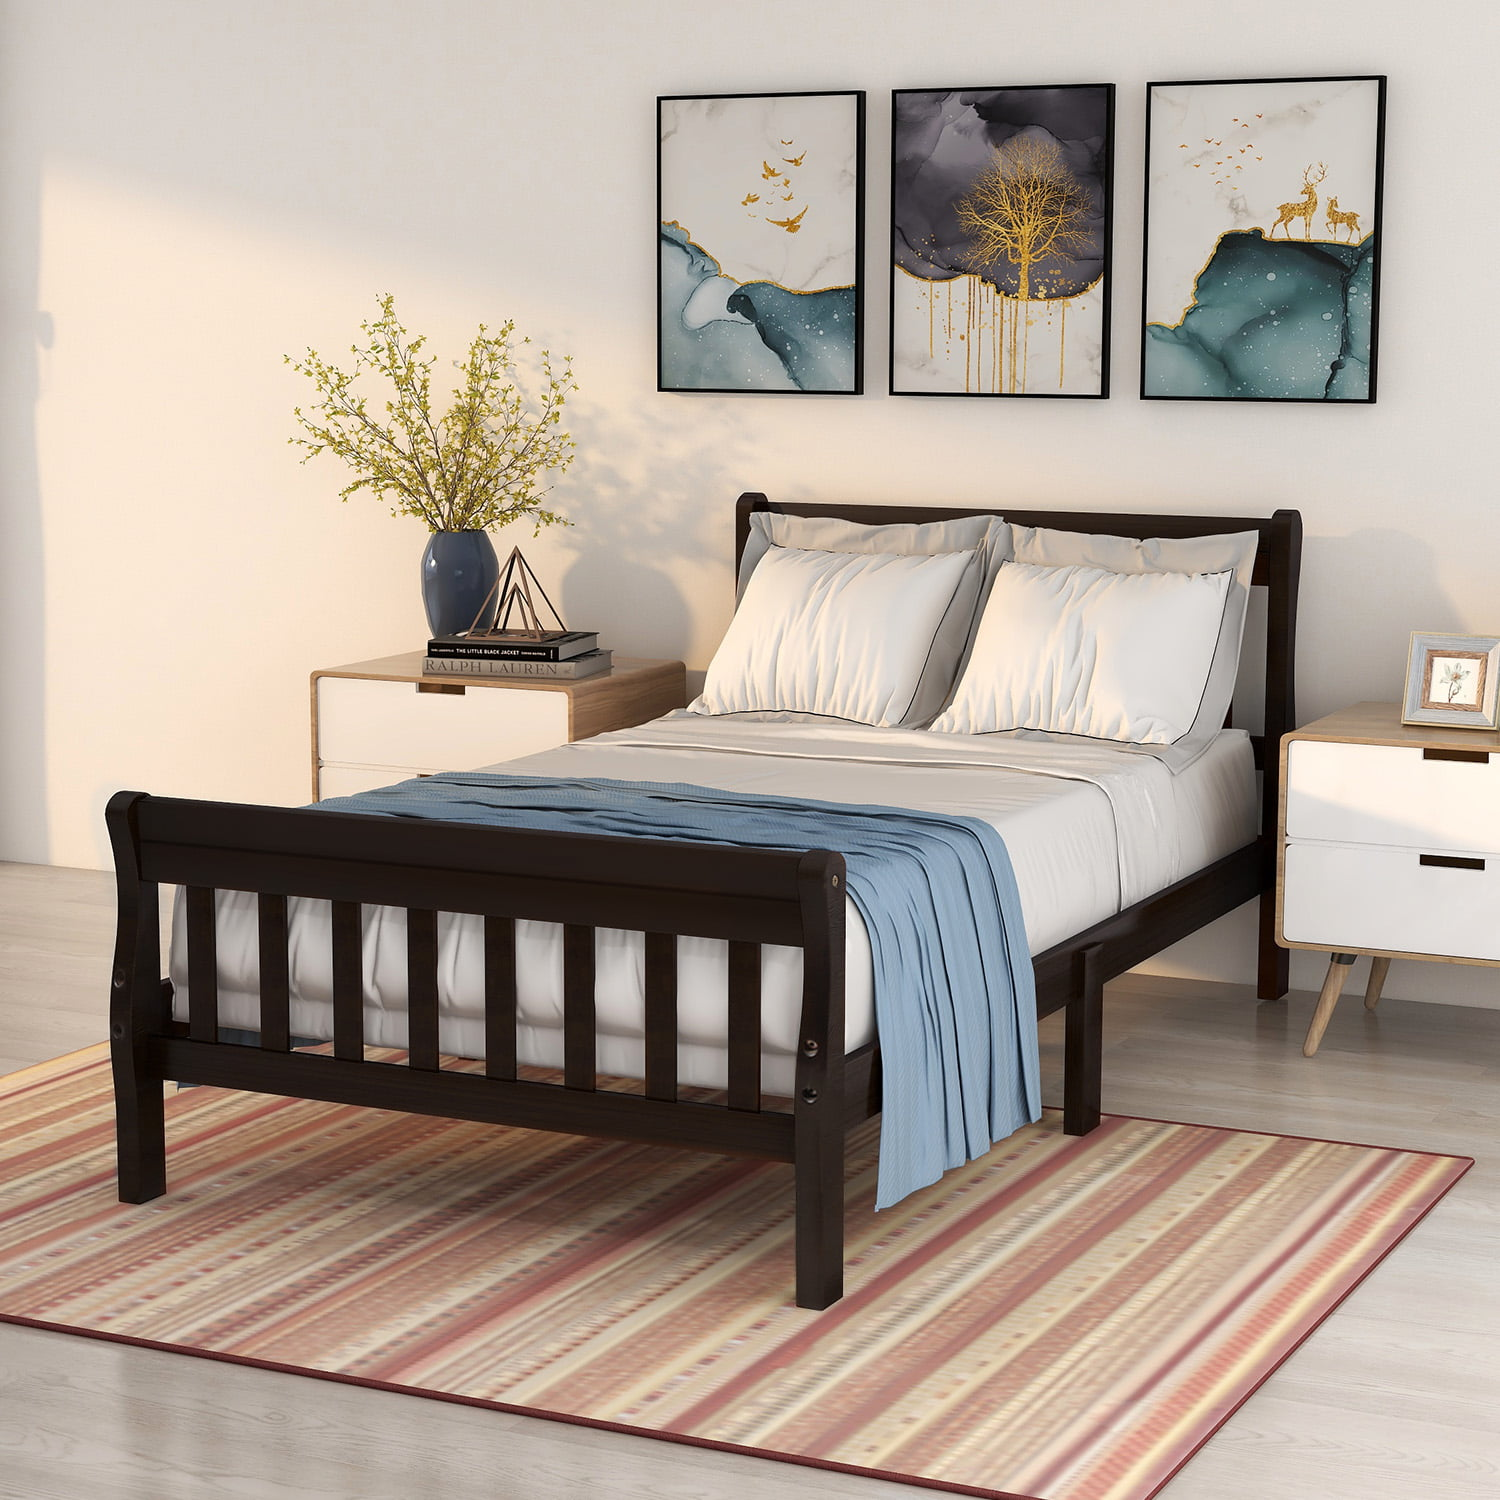 Platform Bed Frame Kids Bed With Headboard And Footboard Classic Twin Bed Frame For Kids Solid Wood Twin Size Bed Frame With Wood Slats Support Holds 200 Lb No Box Spring Needed